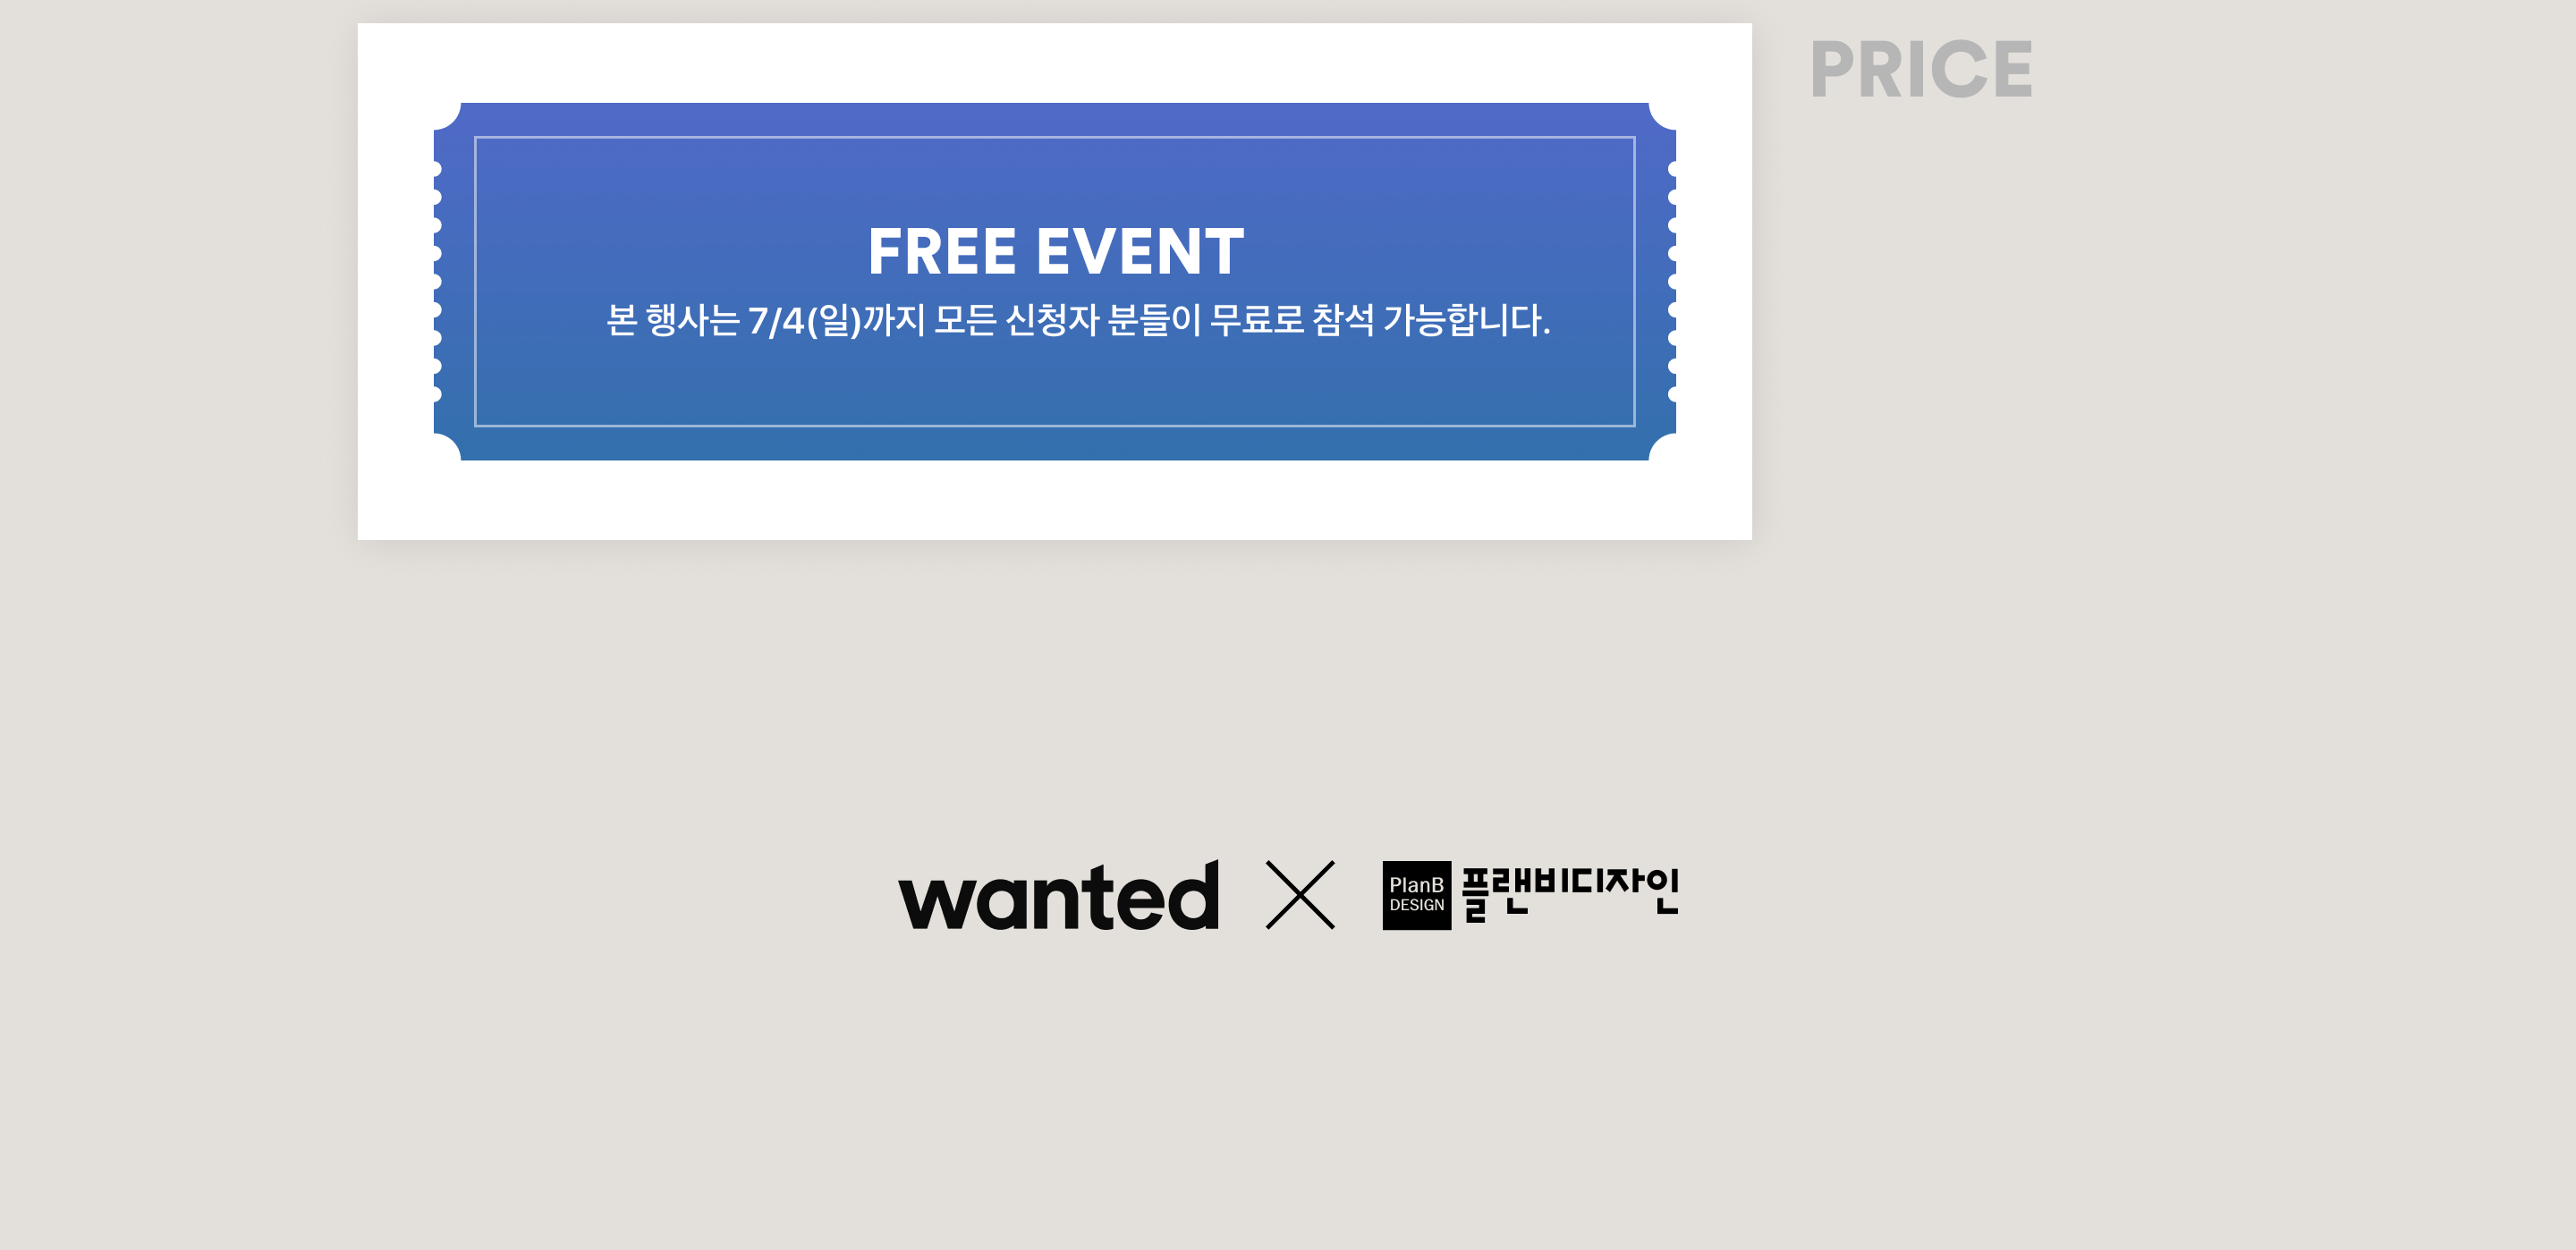 https://static.wanted.co.kr/images/events/1325/59bf7e66.jpg